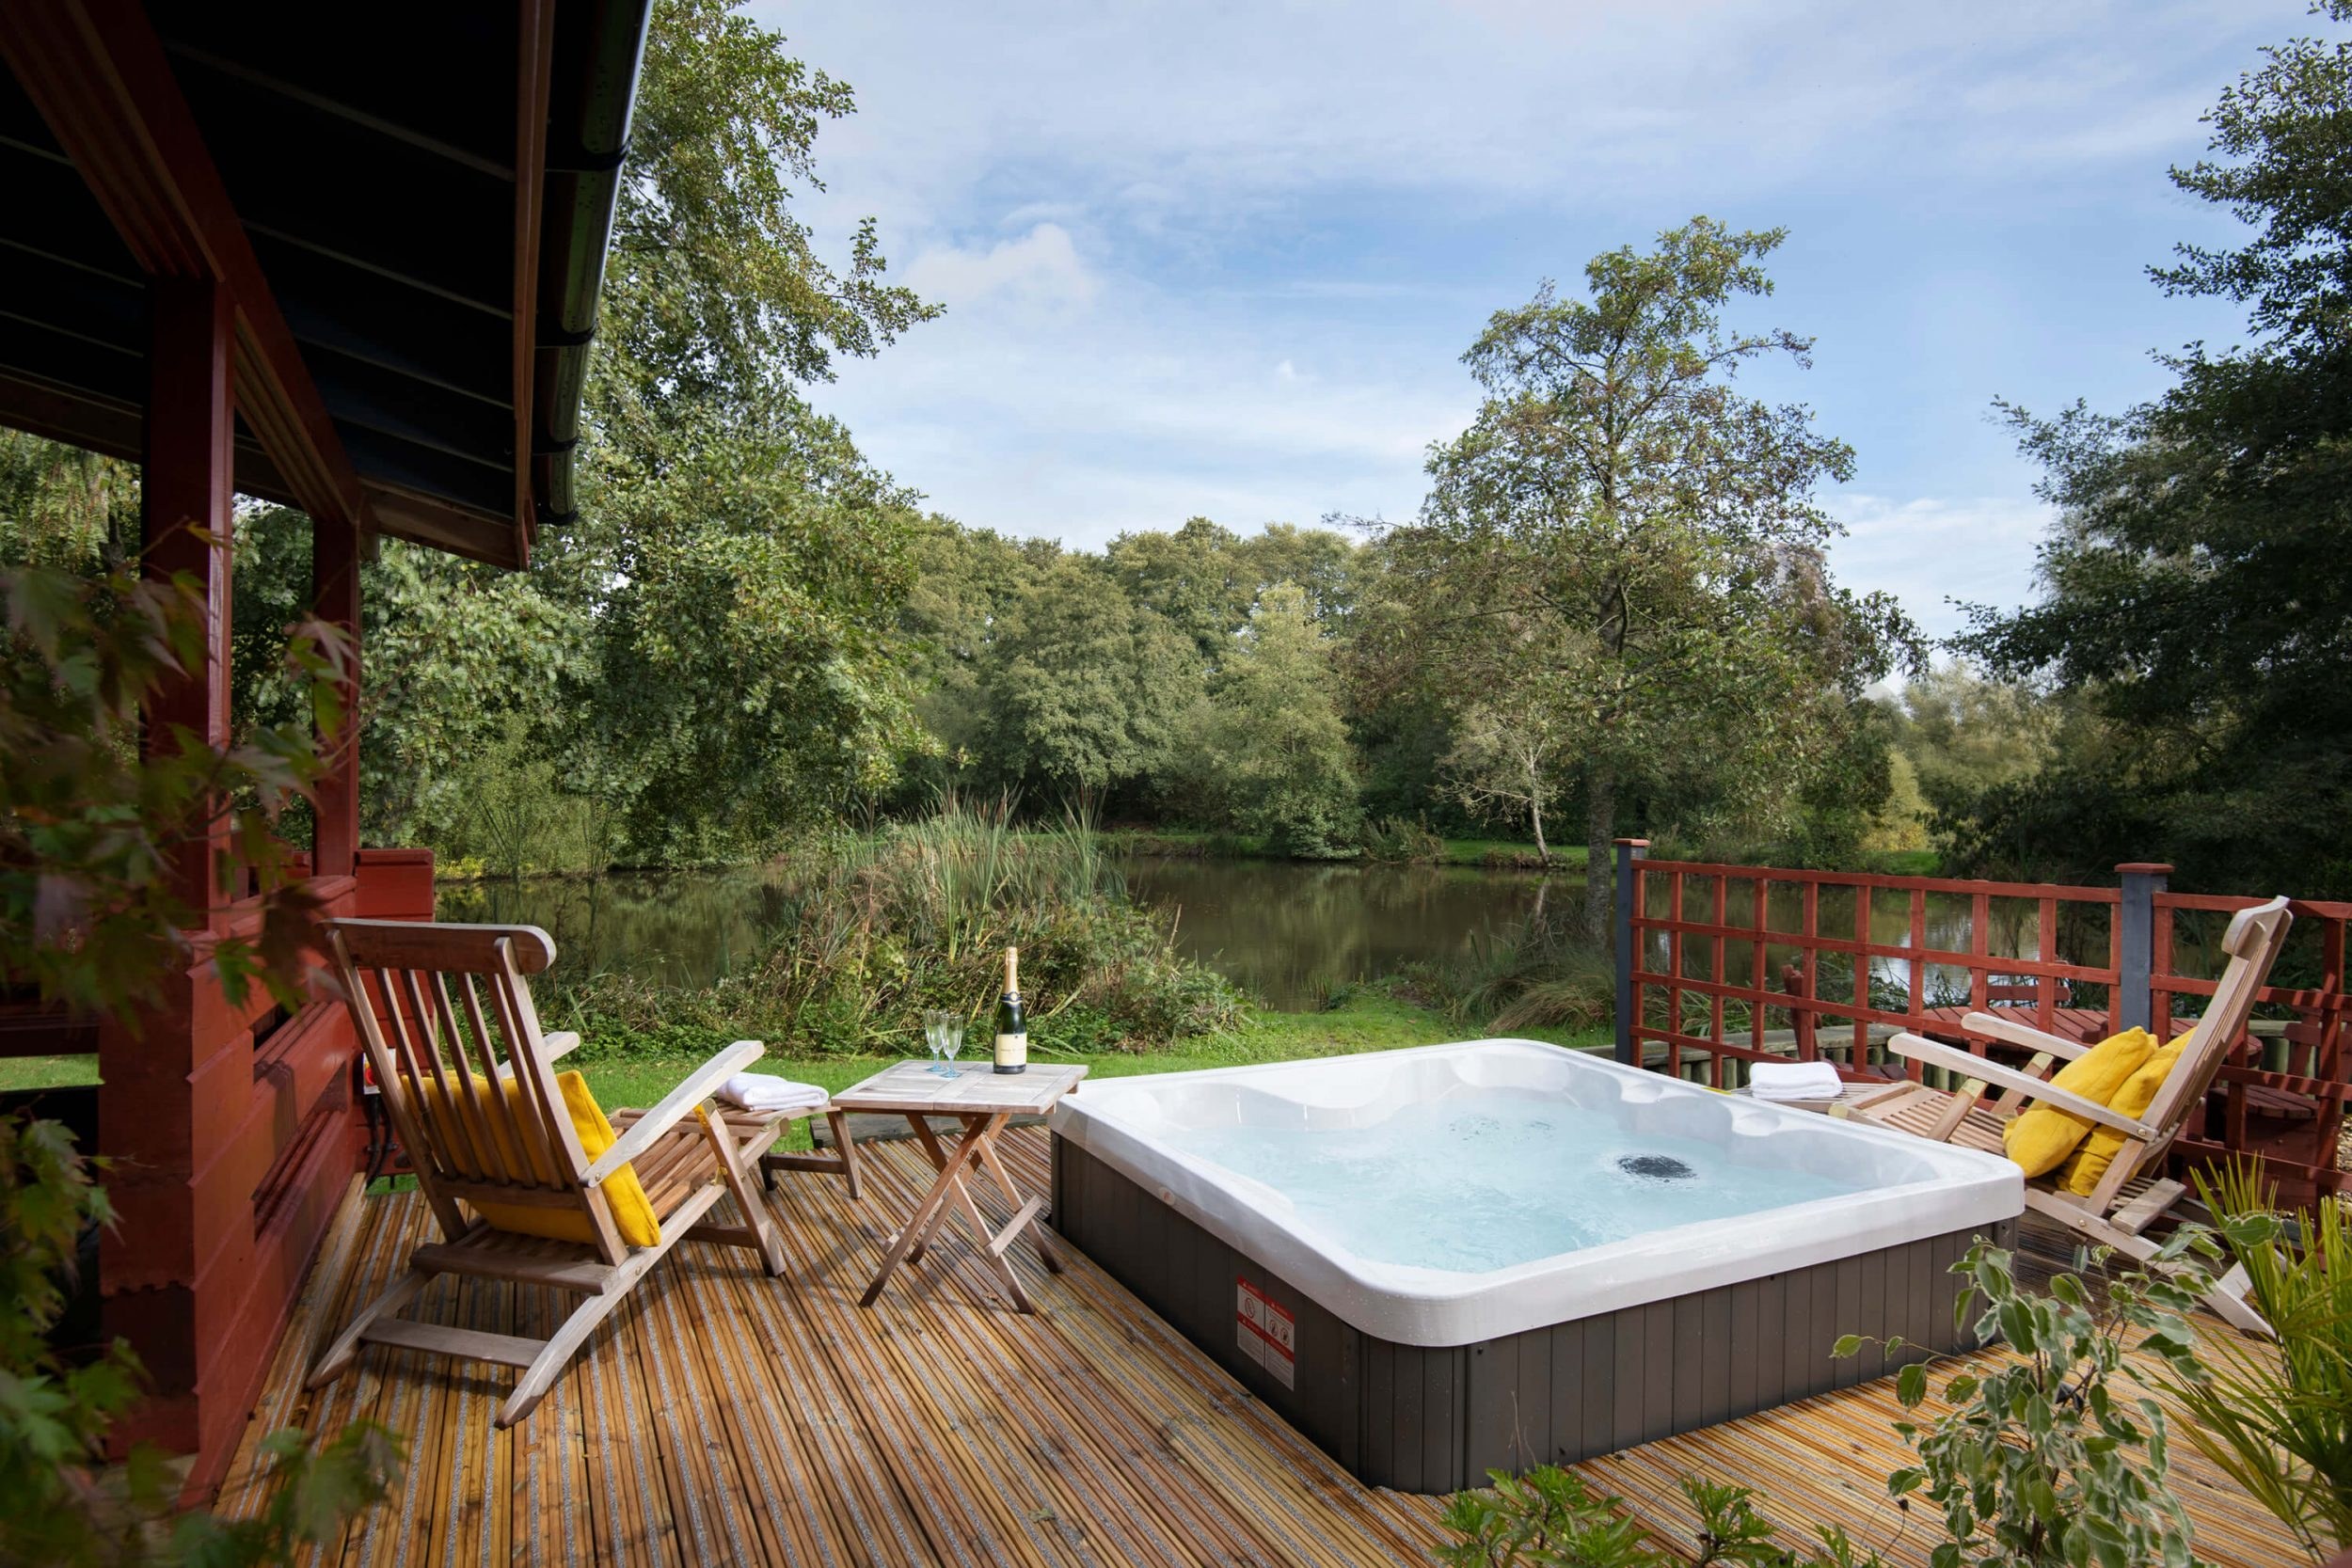 Luxury Fishing Lake Lodges With Hot Tubs Devon Otter Falls